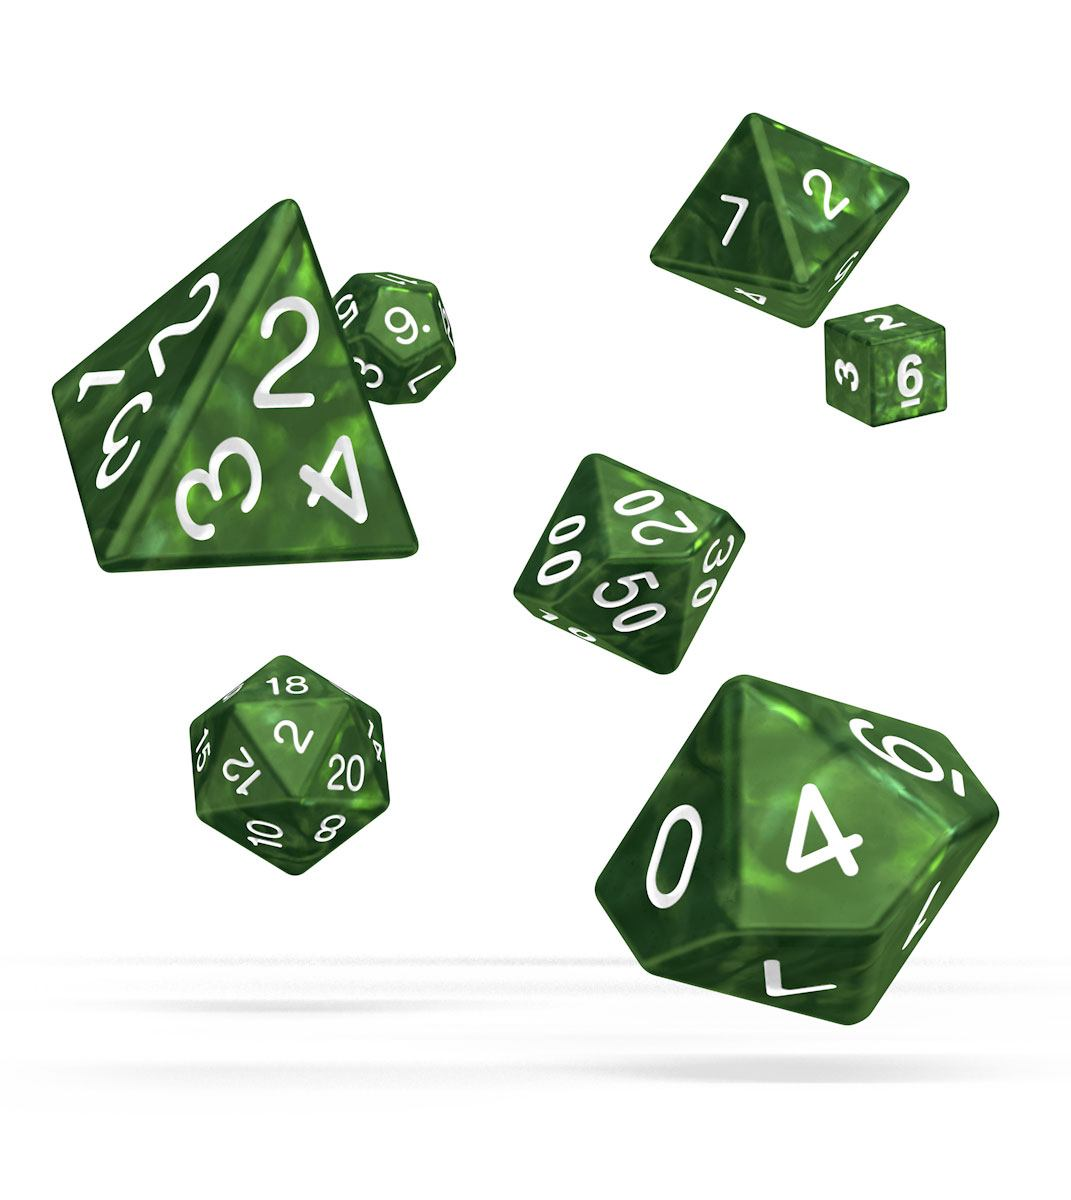 Kocka Set (7) - Oakie Doakie Dice RPG Set Marble - Green